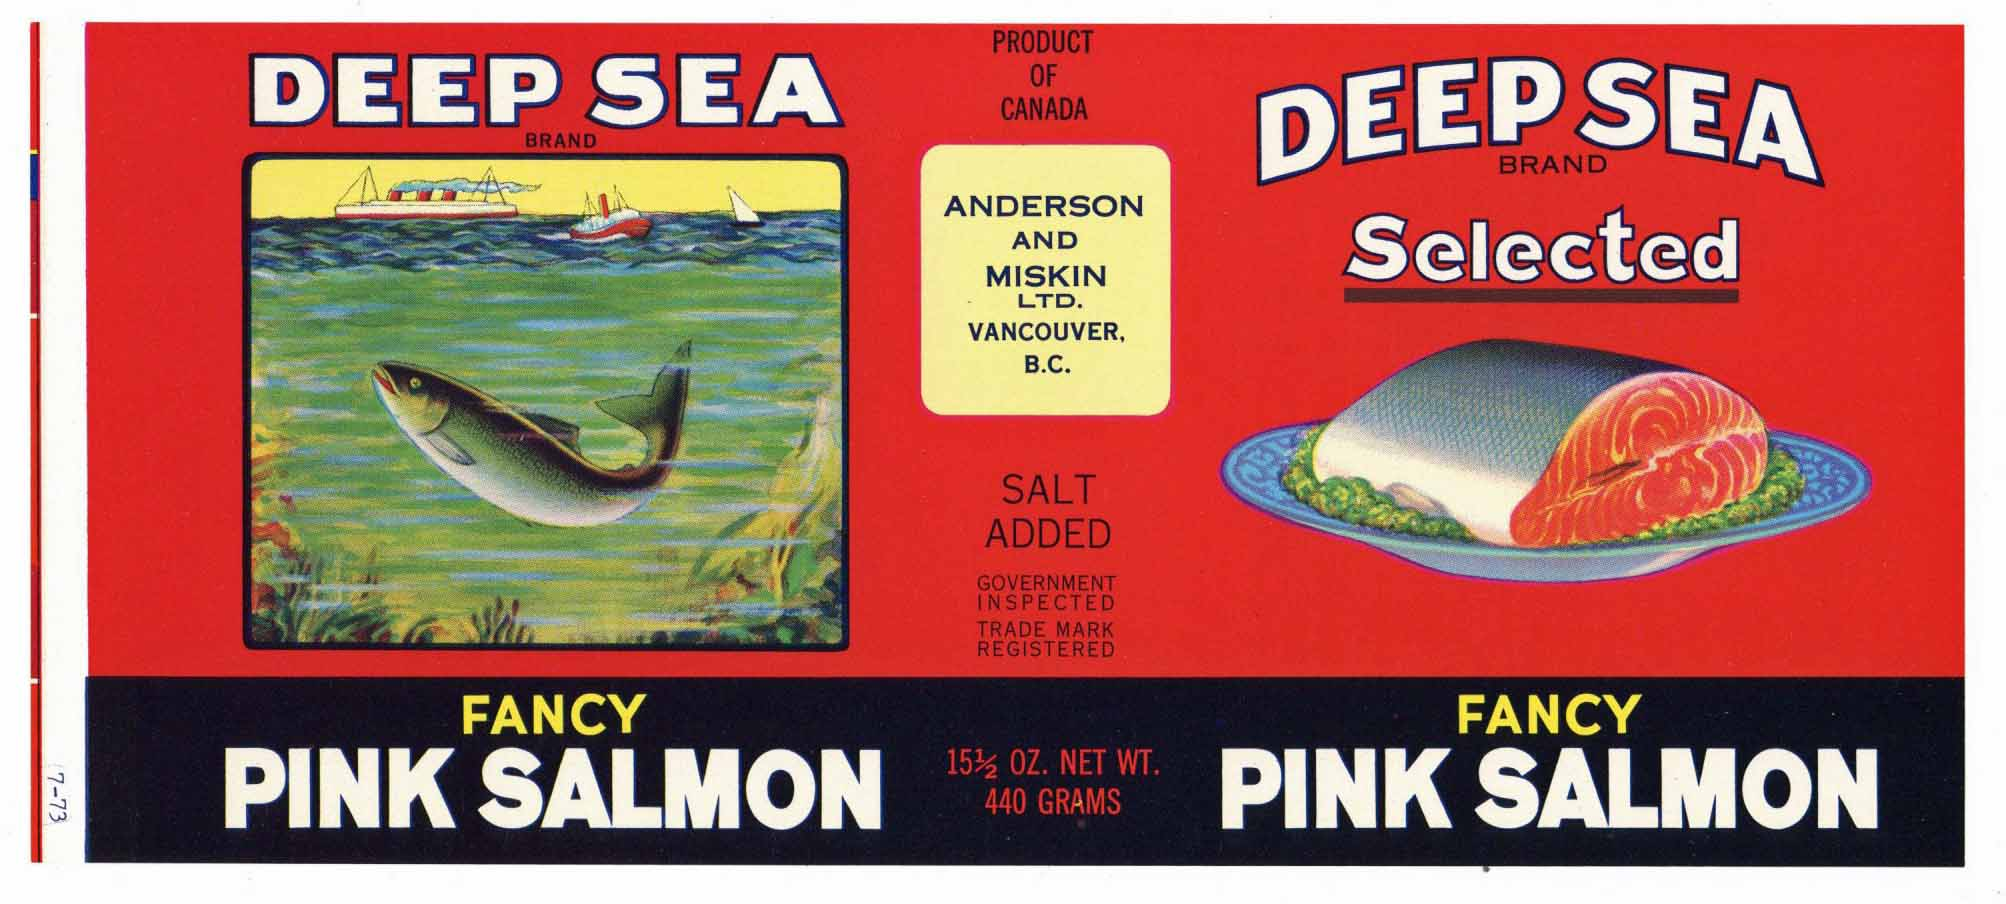 Deep Sea Brand Vintage Canadian Salmon Can Label